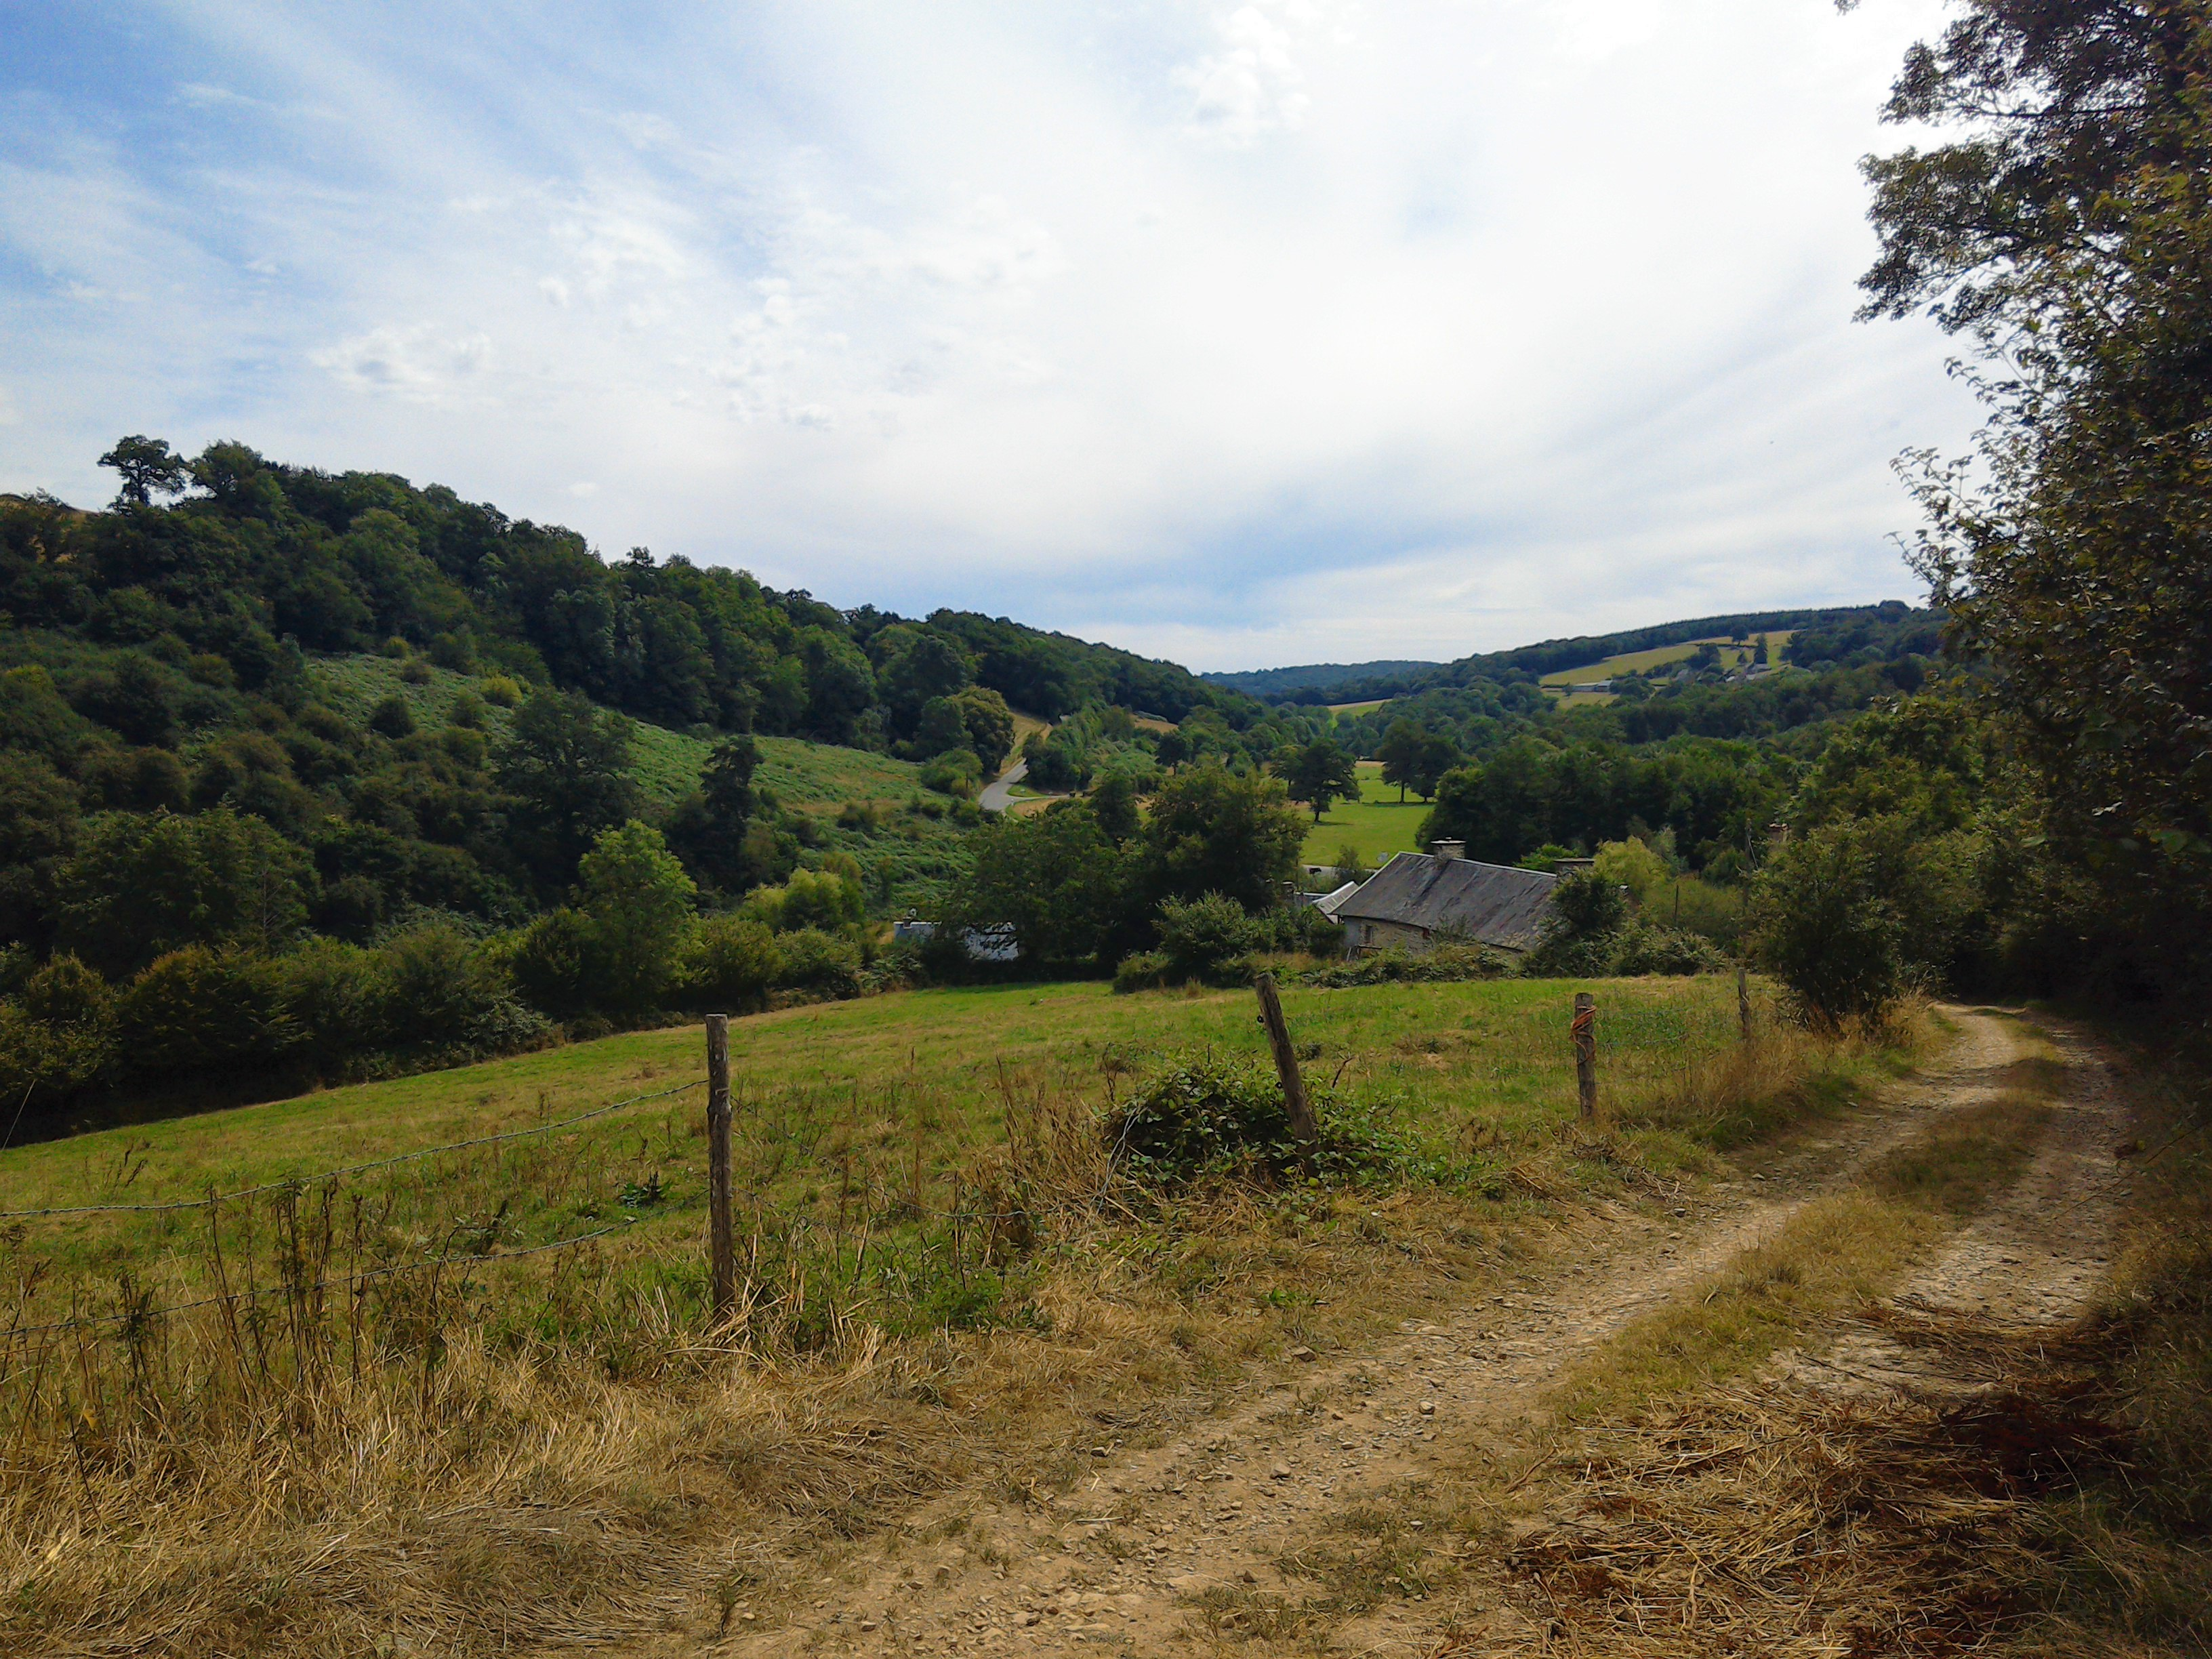 View over the Druance Valley, Normandy, France